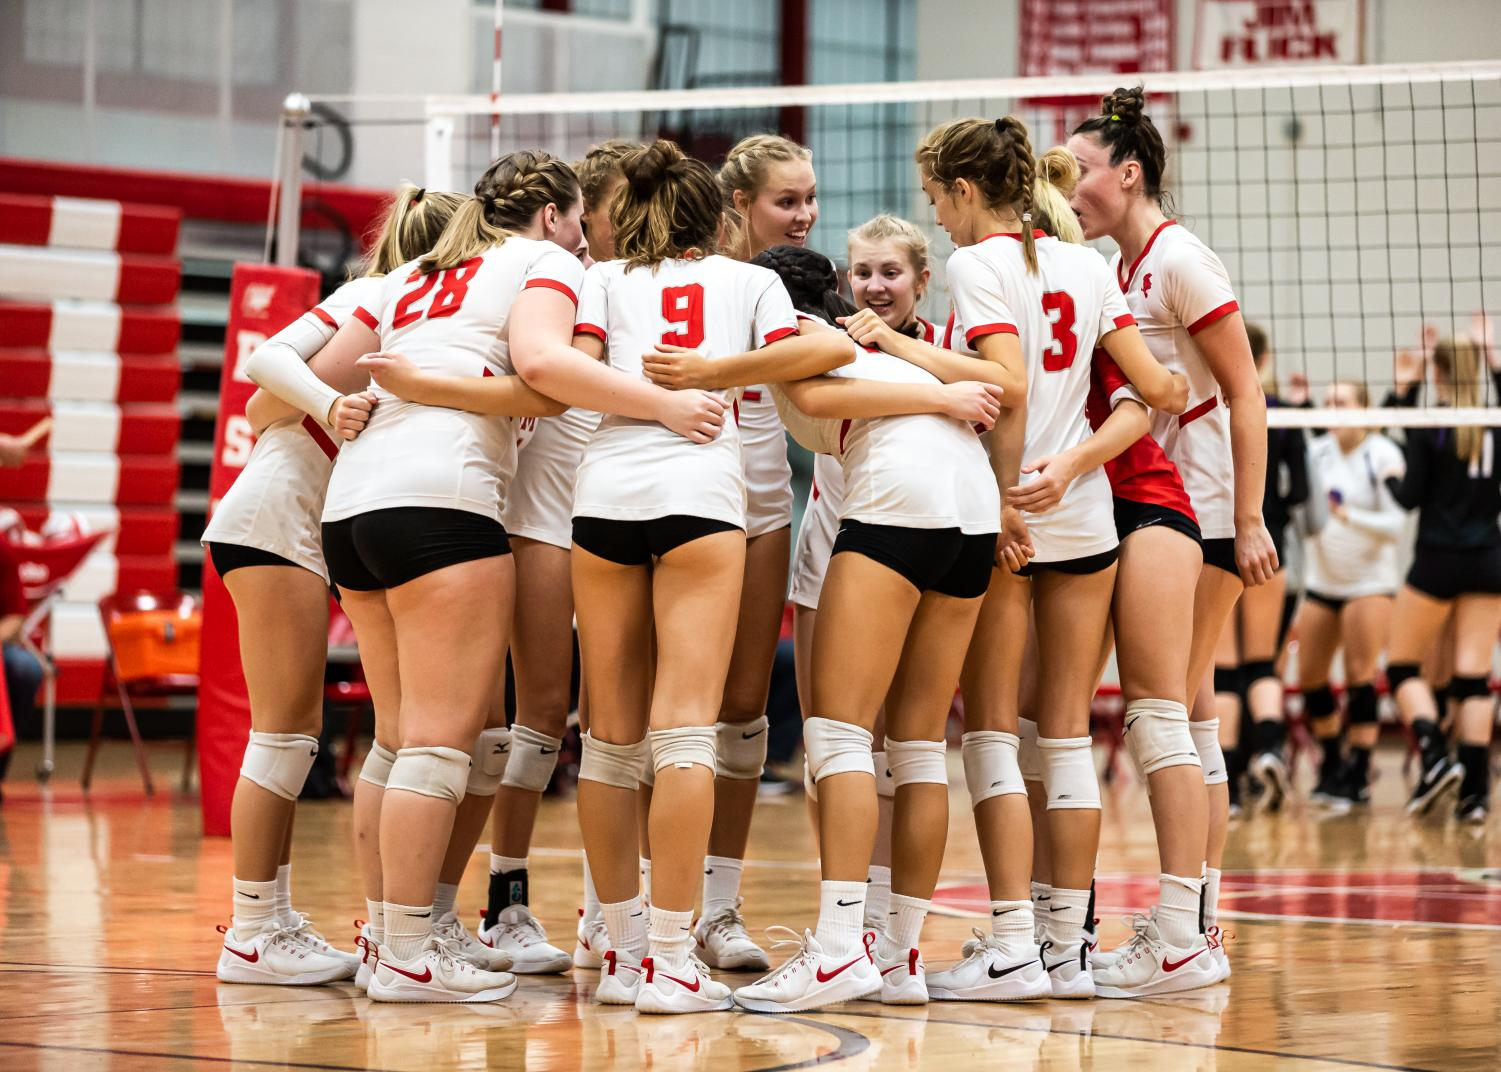 The girls' varsity volleyball team finished their season with a tough loss to St. Louis Park in Sections.